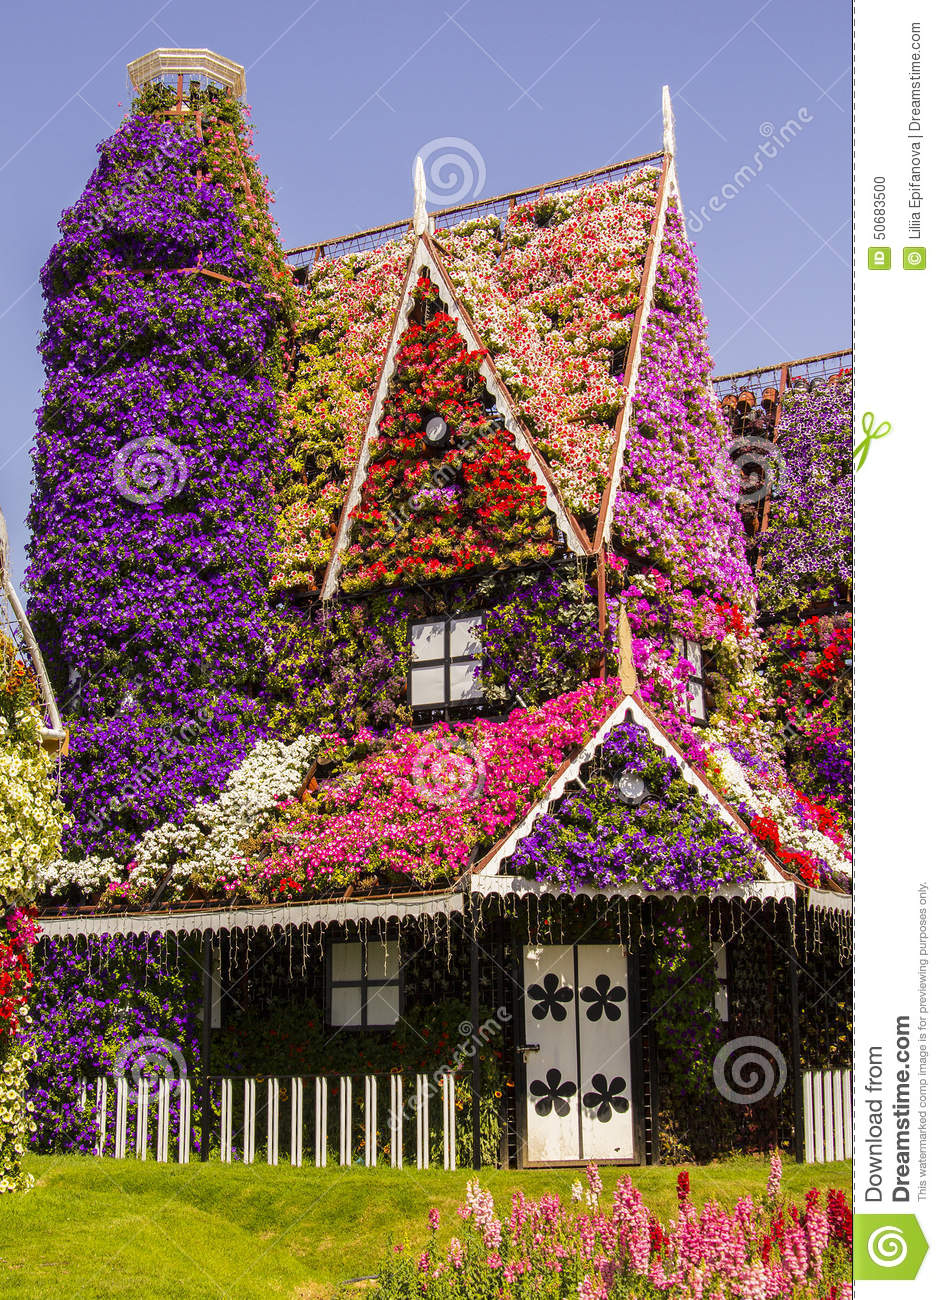 amazing house of flowers in the miracle garden park stock photo